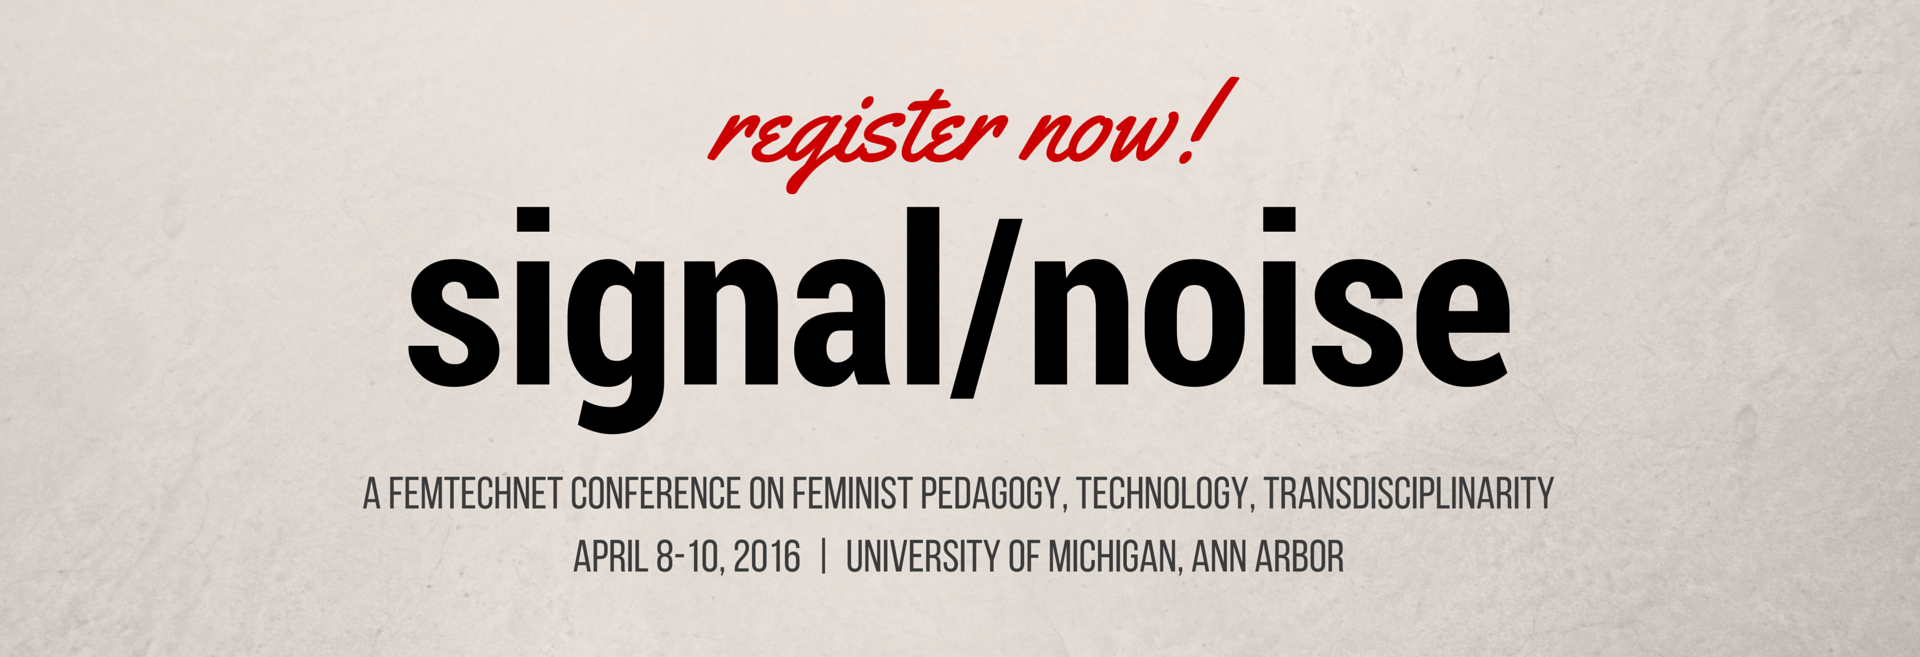 call to register for FTN conference